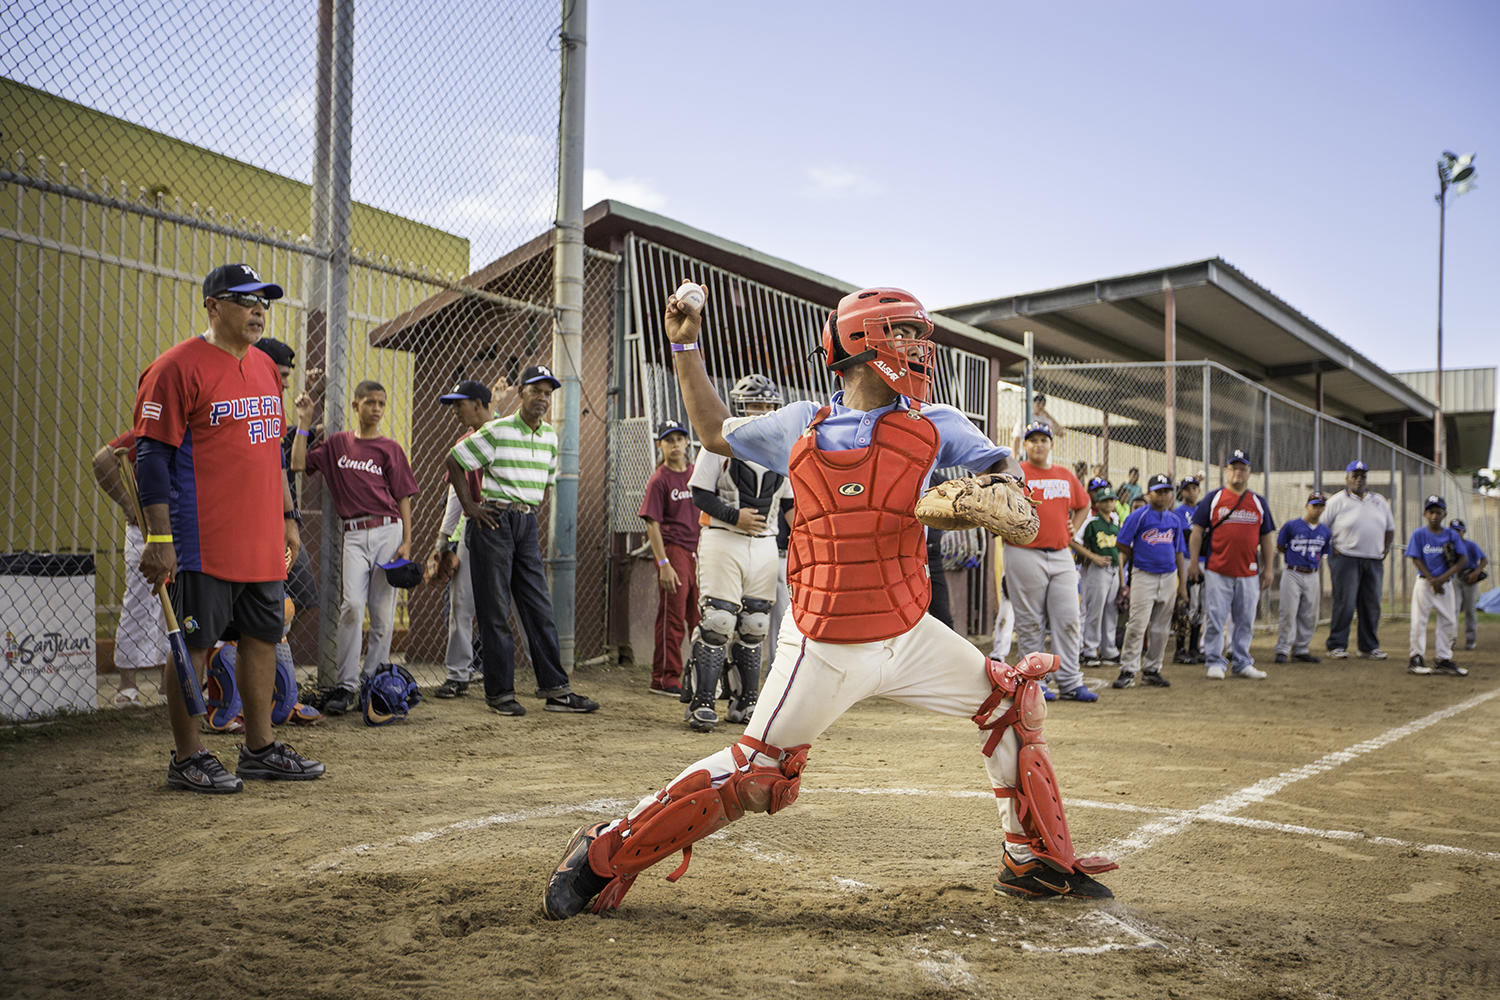 Former player Edwin Rodríguez (far left) works with a catcher during a baseball clinic for kids at the Canales low income housing project in San Juan, Puerto Rico on December 27, 2014. The stories of baseball players throughout Latin America will be told on La Vida Baseball's platform. (Jean Fruth / National Baseball Hall of Fame)